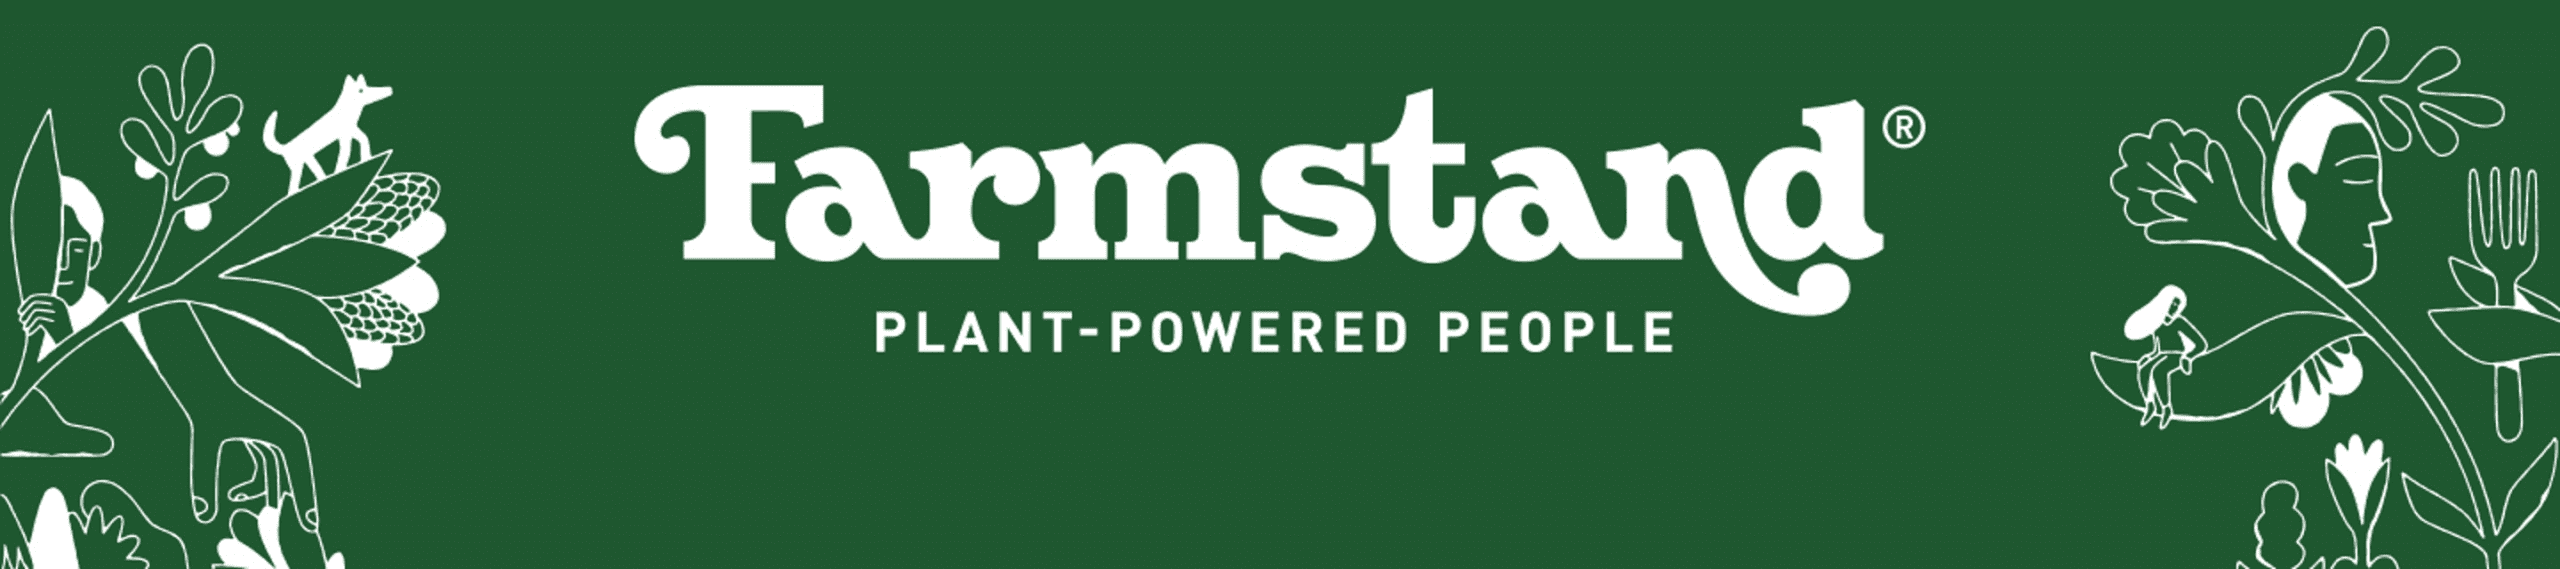 FARMSTAND LIMITED | Convertible | Seedrs | Mixed B2B/B2C | Crowdfund | Crowdfundingtracker | London